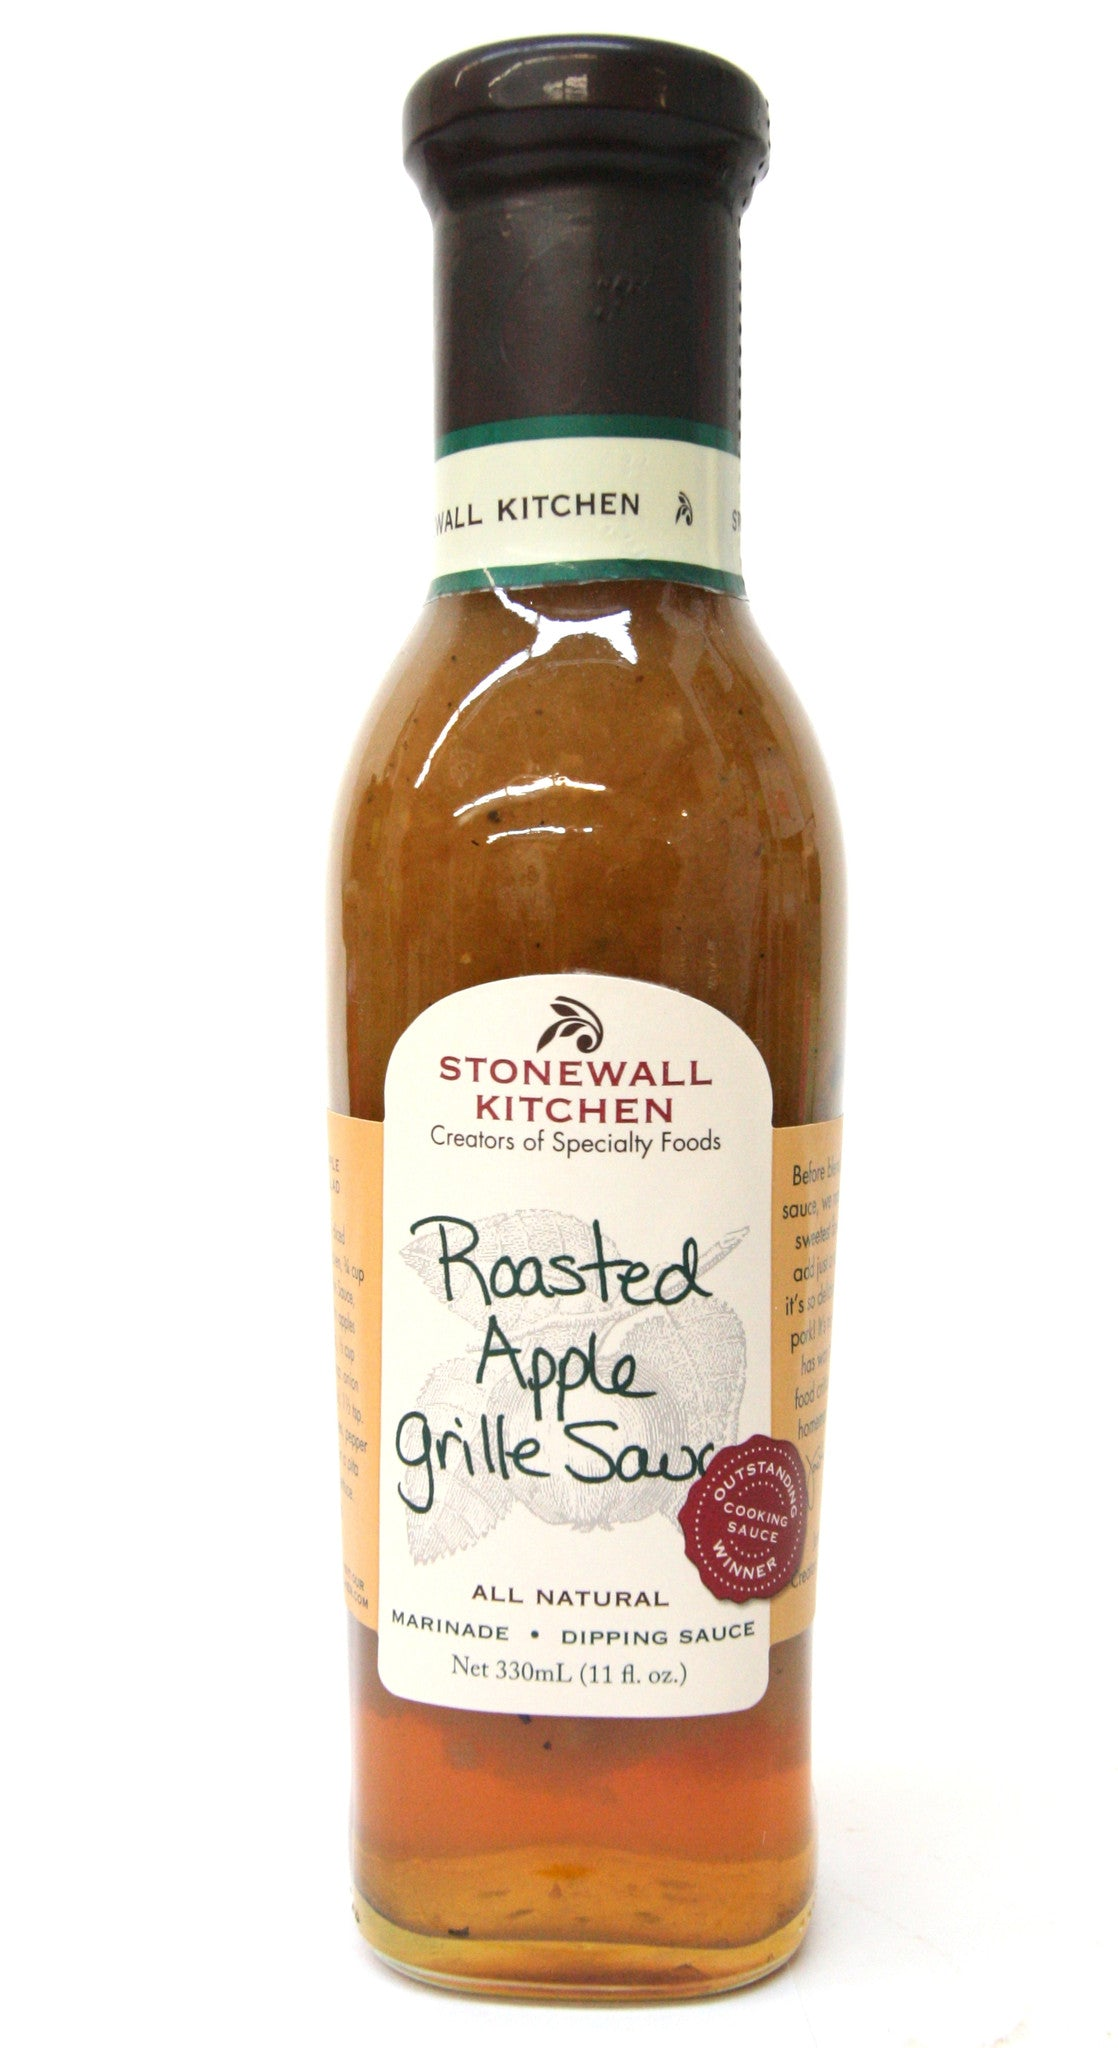 Stonewall Kitchen Roasted Apple Grille Sauce   countrymercantile